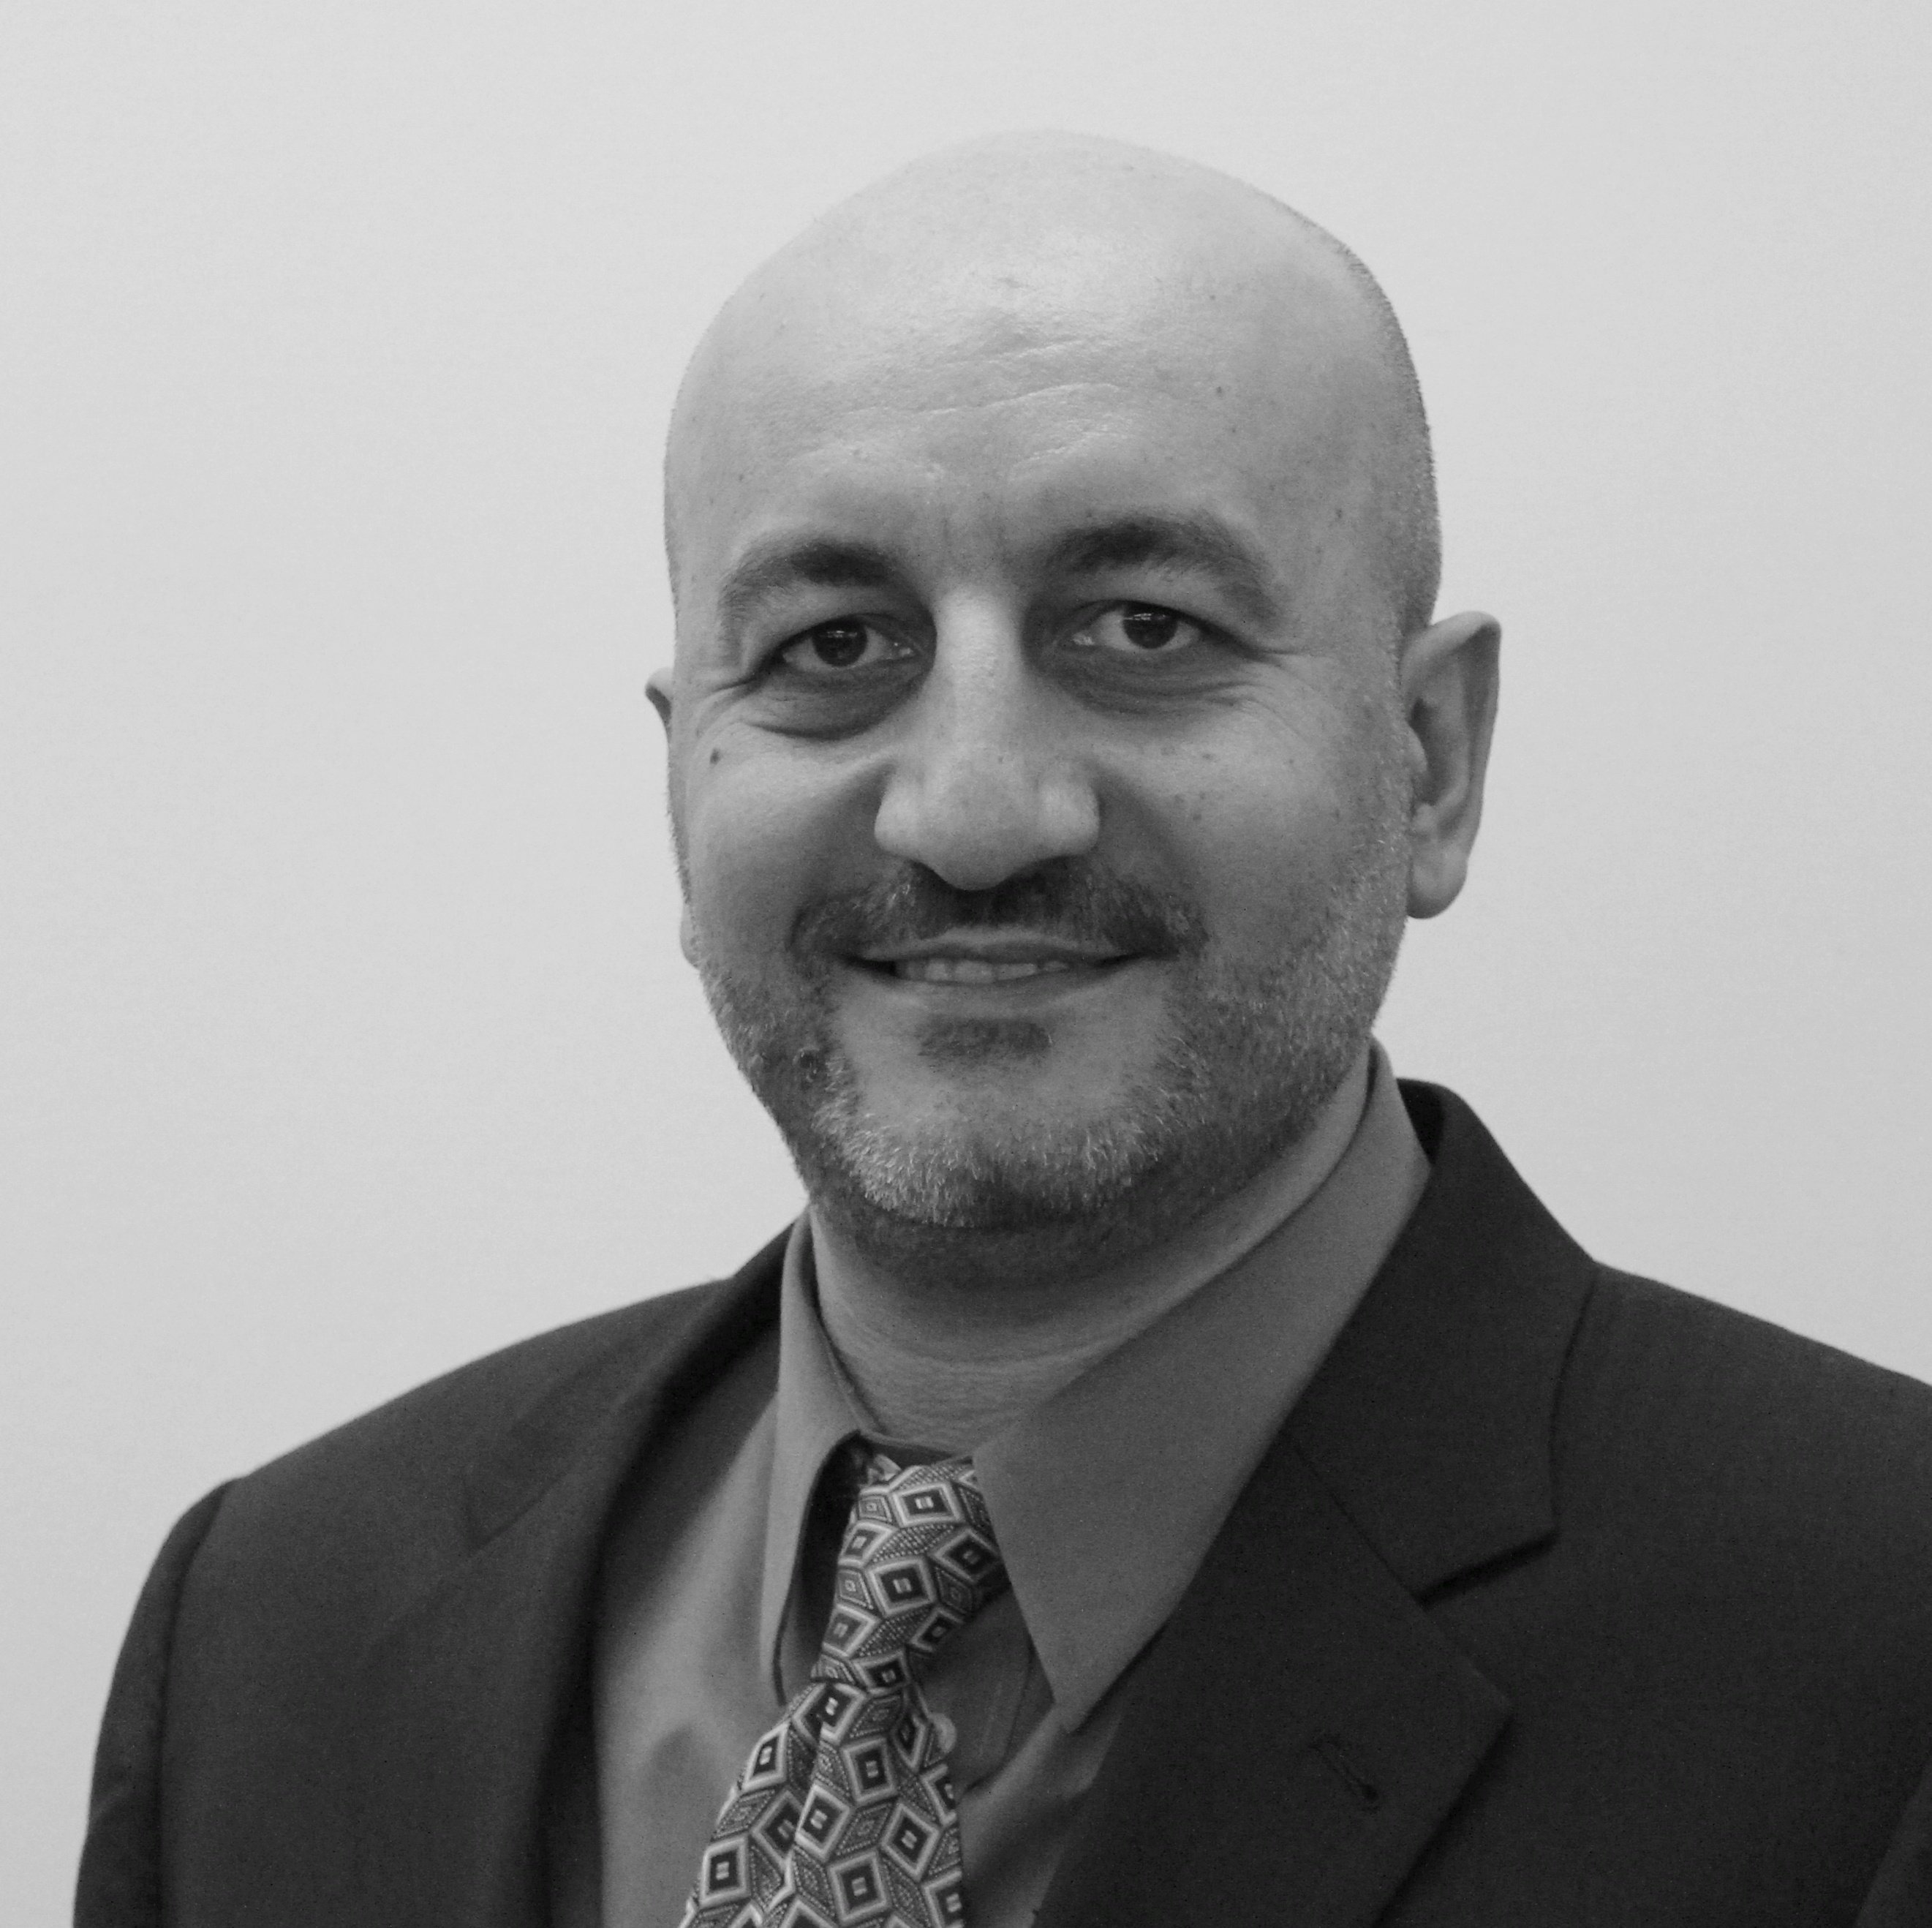 Introducing Mahmut Sarigedik, Tabush's Chief Technology Officer